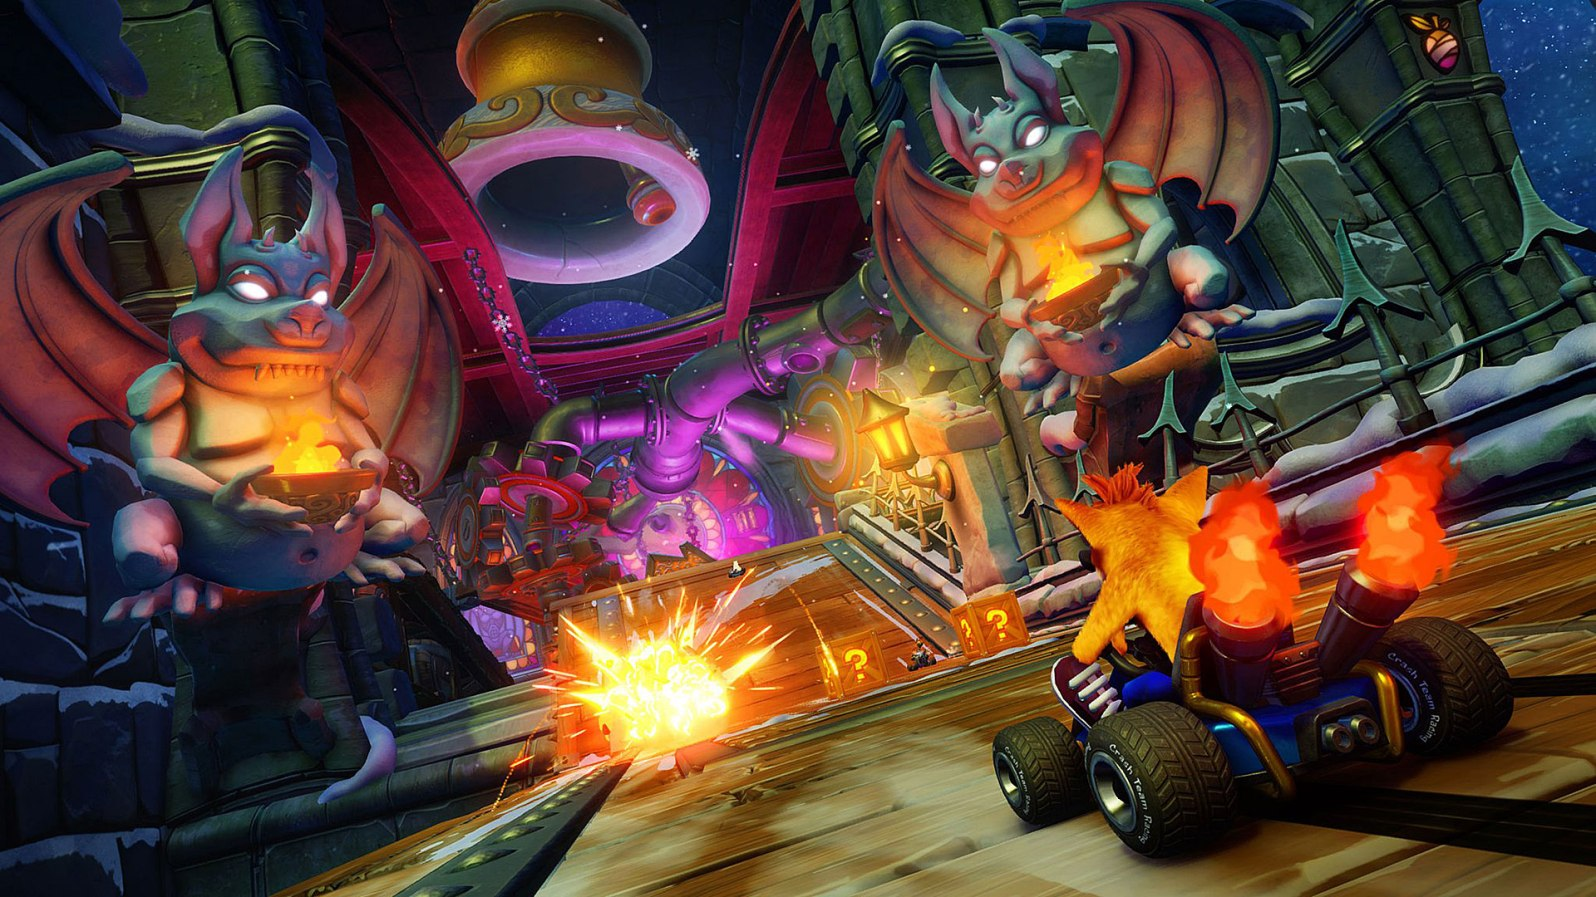 Quelle: Twitter/@CrashBandicoot - Crash Team Racing Nitro-Fueled